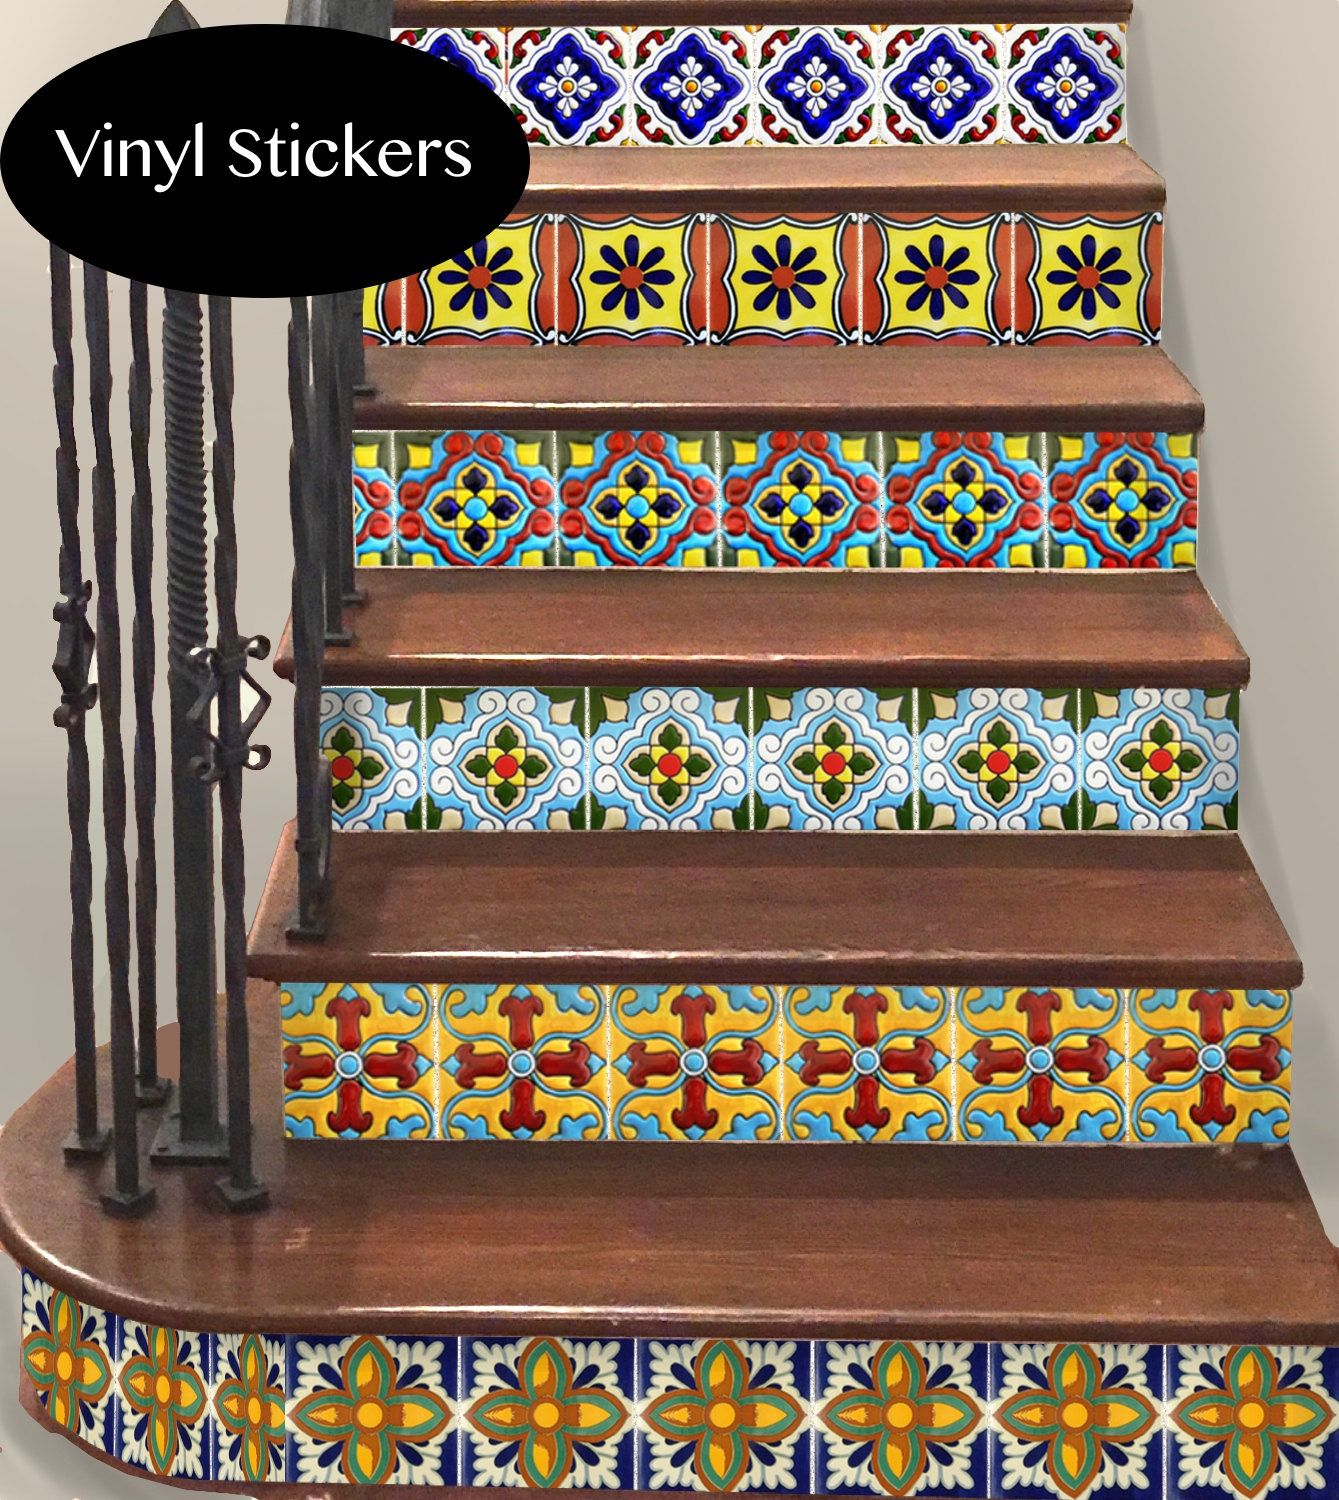 Best 15Steps Stair Riser Vinyl Strips Removable Sticker Peel 640 x 480